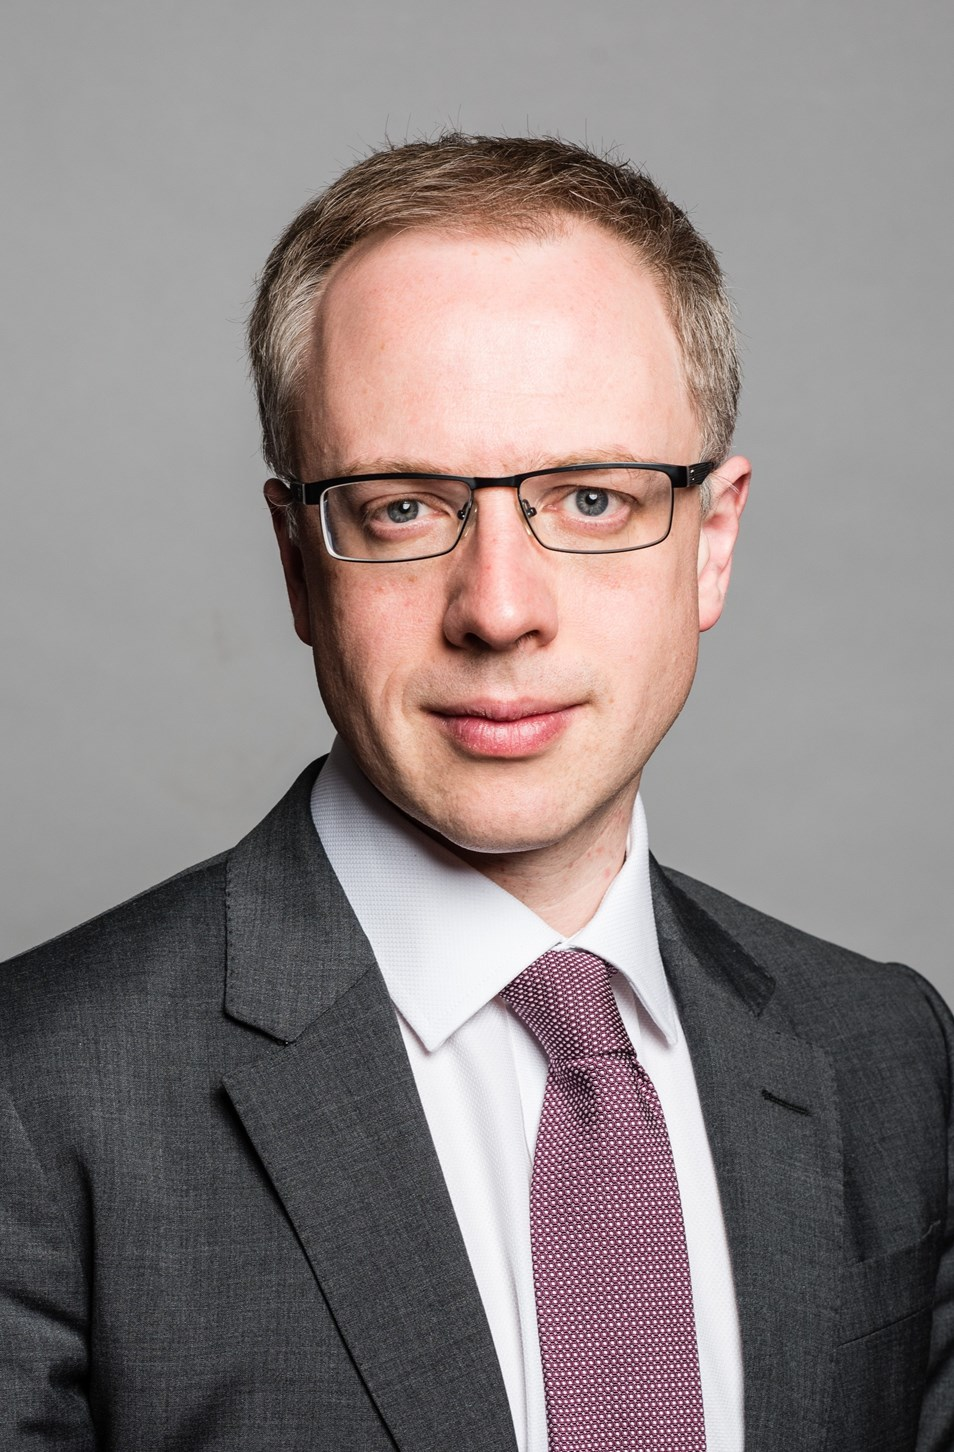 Have your say at Leader's Question Time with Cllr Richard Watts: Islington Council leader Cllr Richard Watts